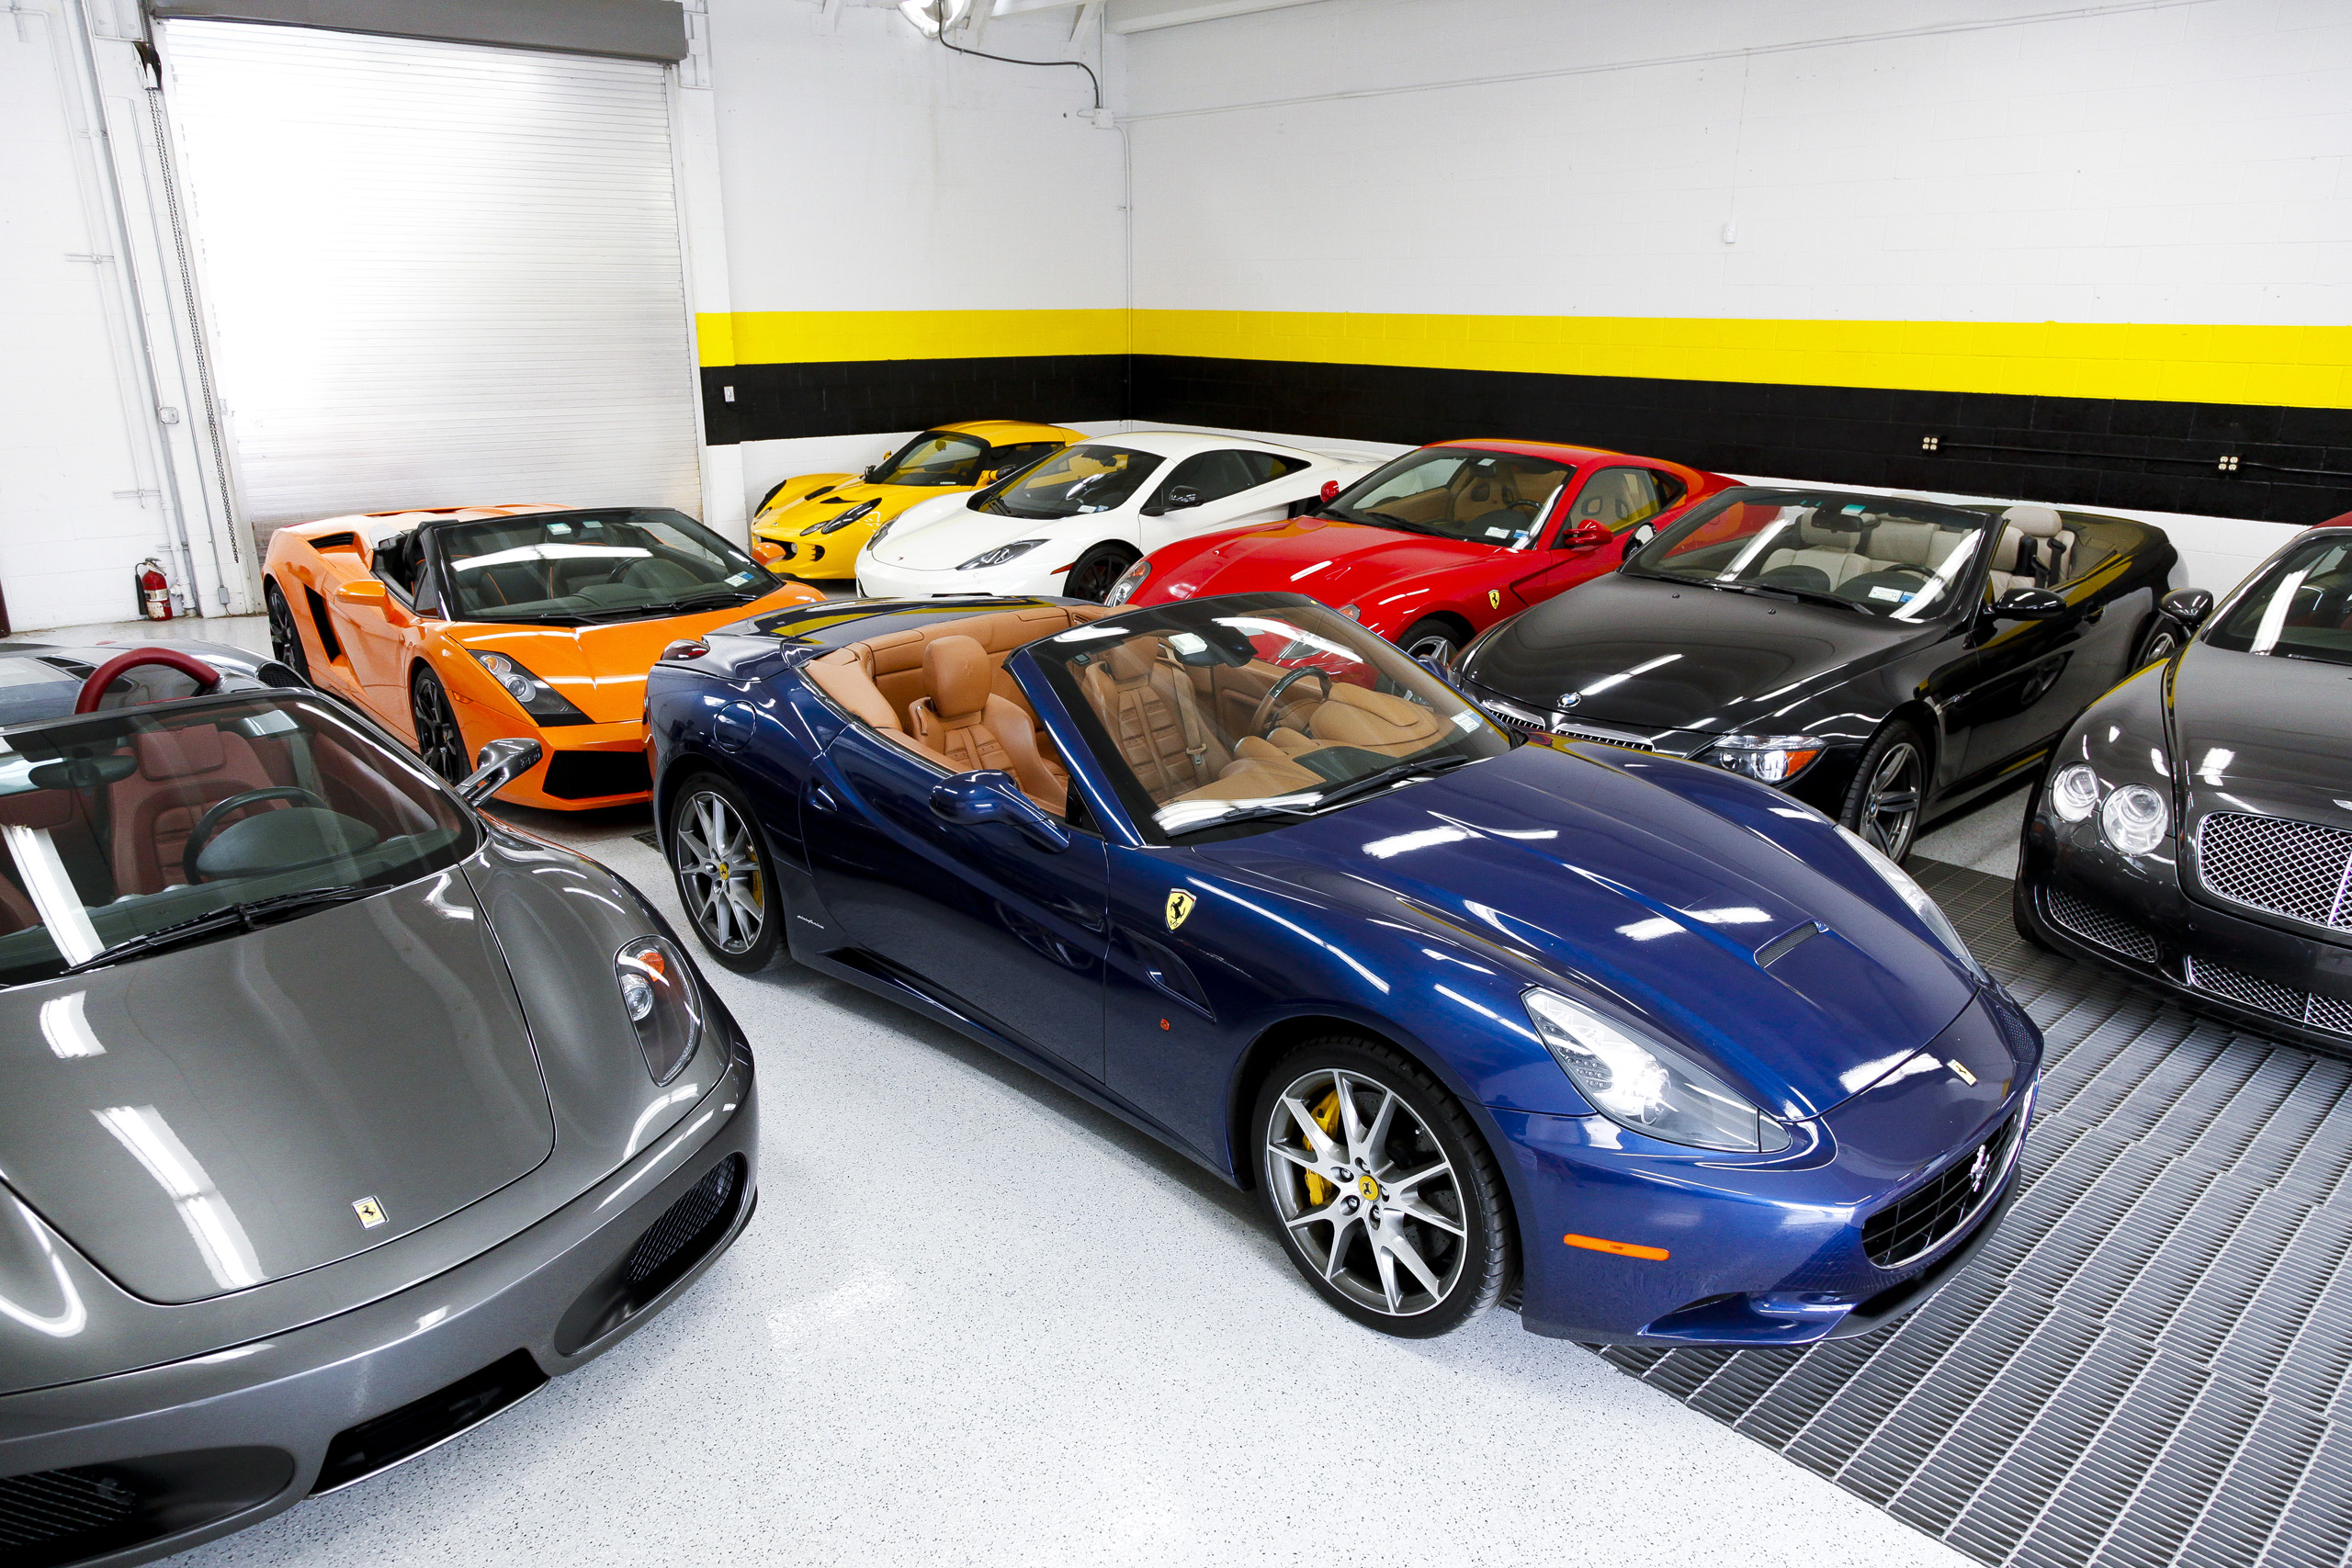 ULTRA-EXOTIC AUTO RENTAL AND EXPERIENTIAL EXPERTS BRING SERVICES TO LOS ANGELES